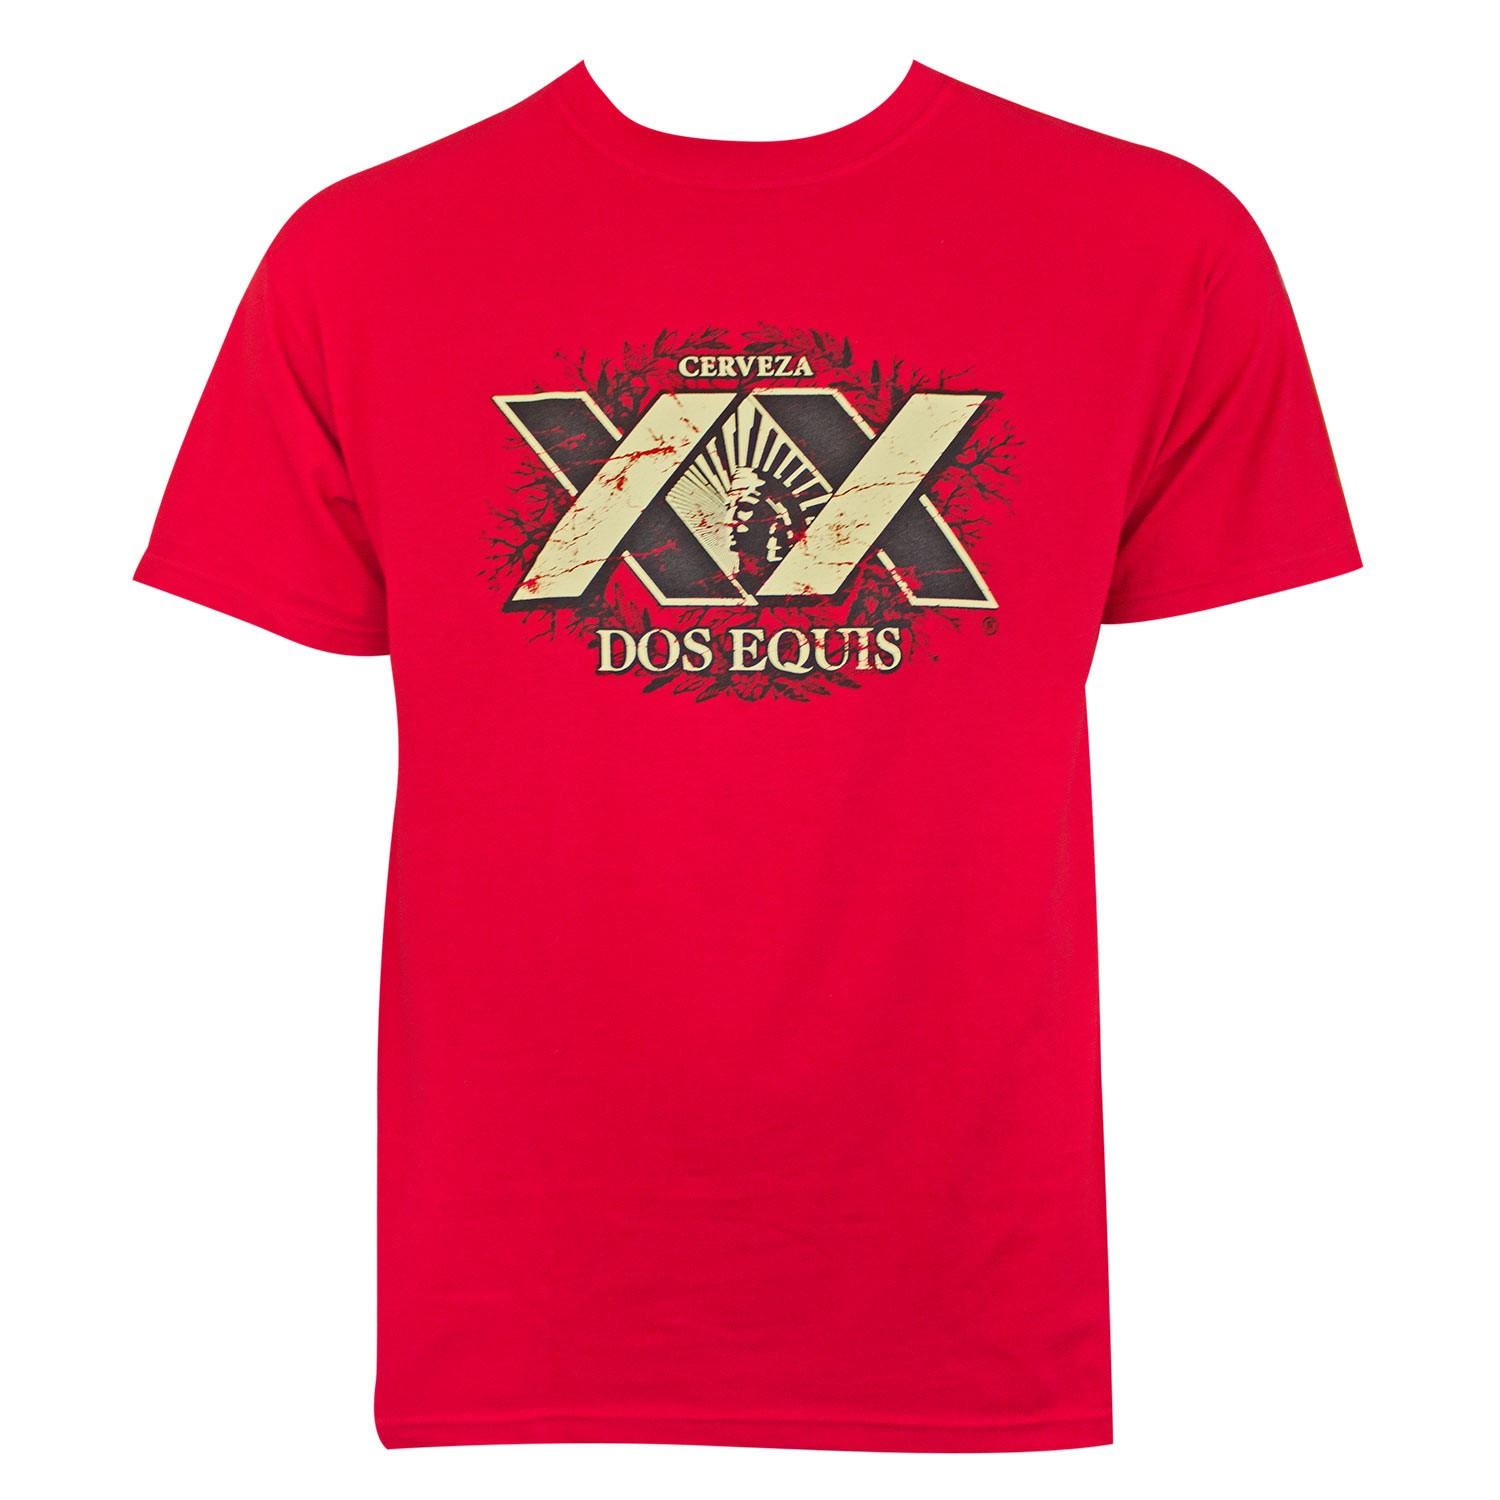 Dos Equis Red XX Logo Tee Shirt